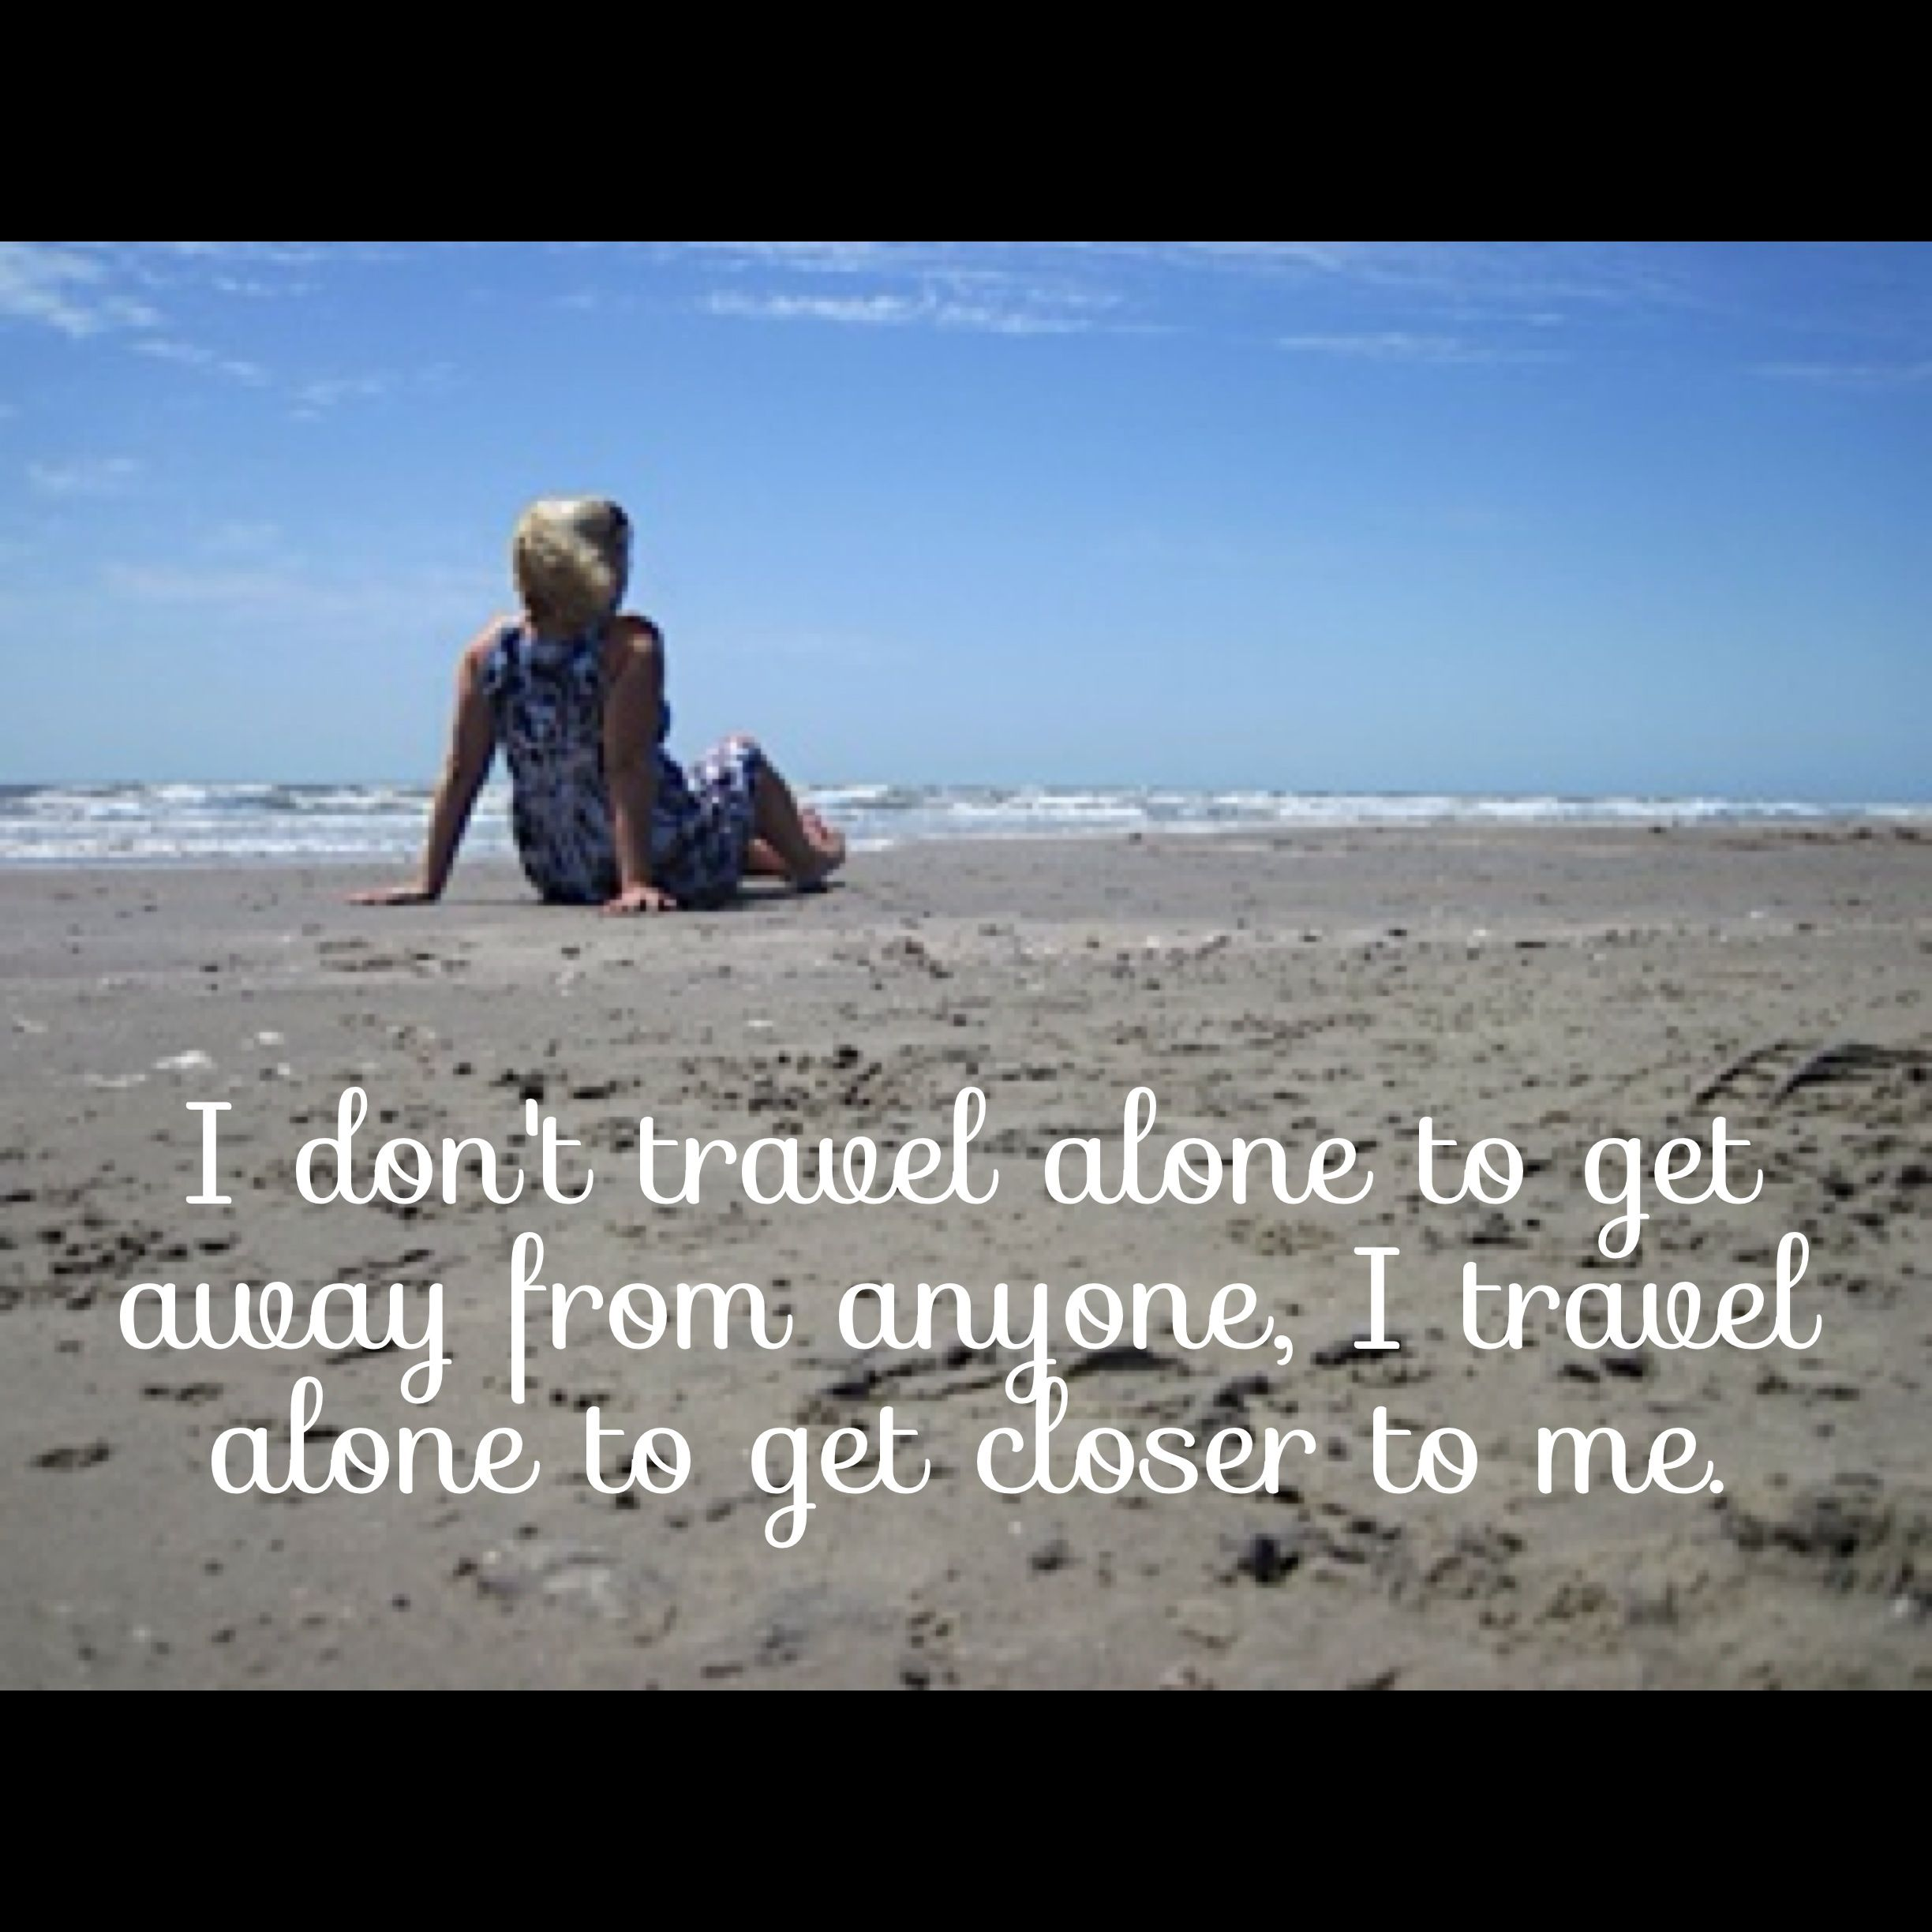 Travel Alone Quotes Magnificent Self Photo With My Words To Describe Why I Love To Travel Solo